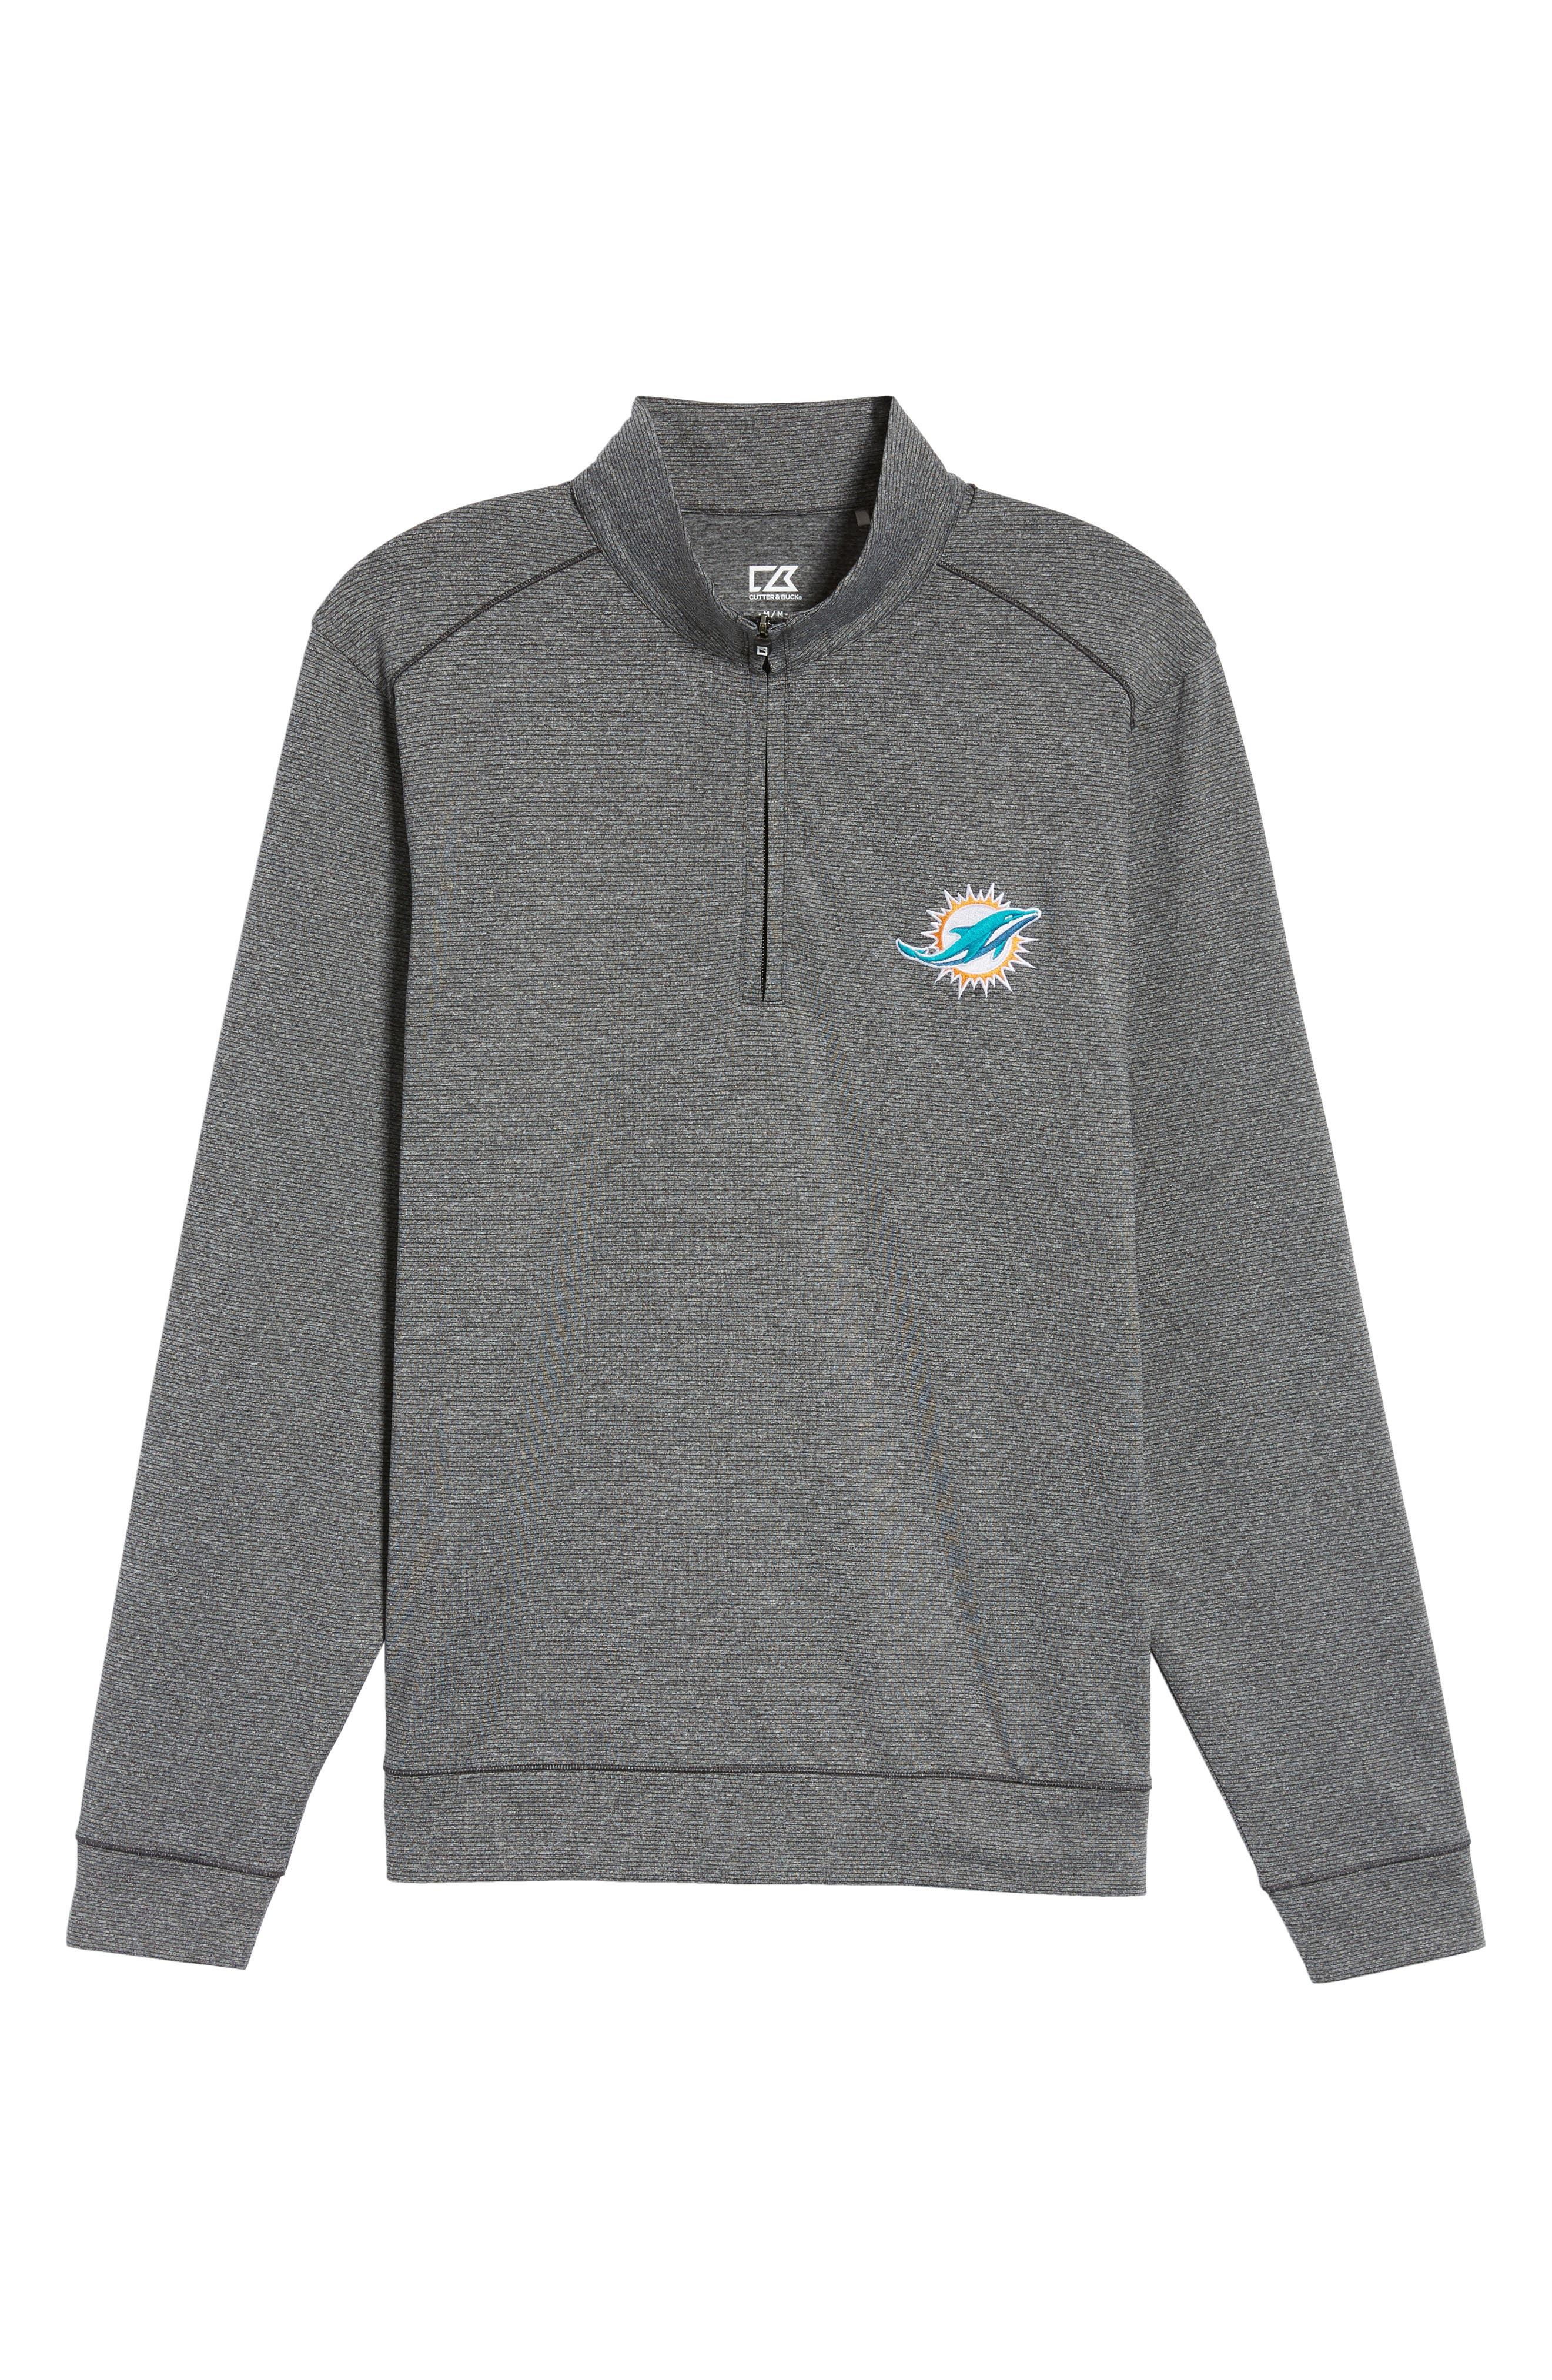 Shoreline - Miami Dolphins Half Zip Pullover,                             Alternate thumbnail 6, color,                             Charcoal Heather